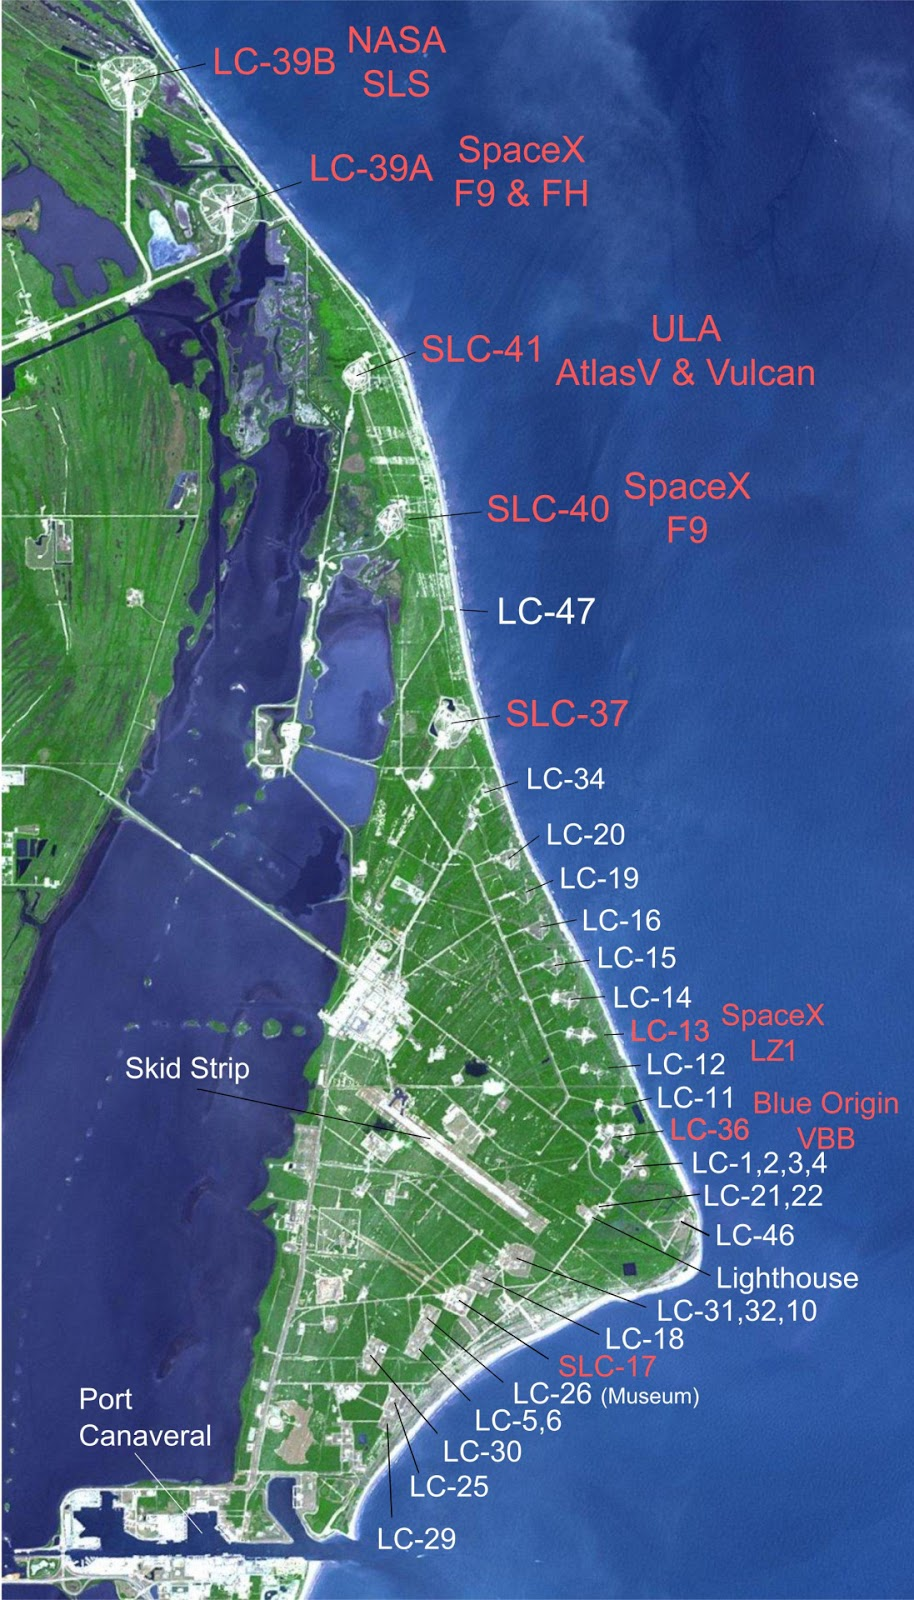 Cape Canaveral launch sites